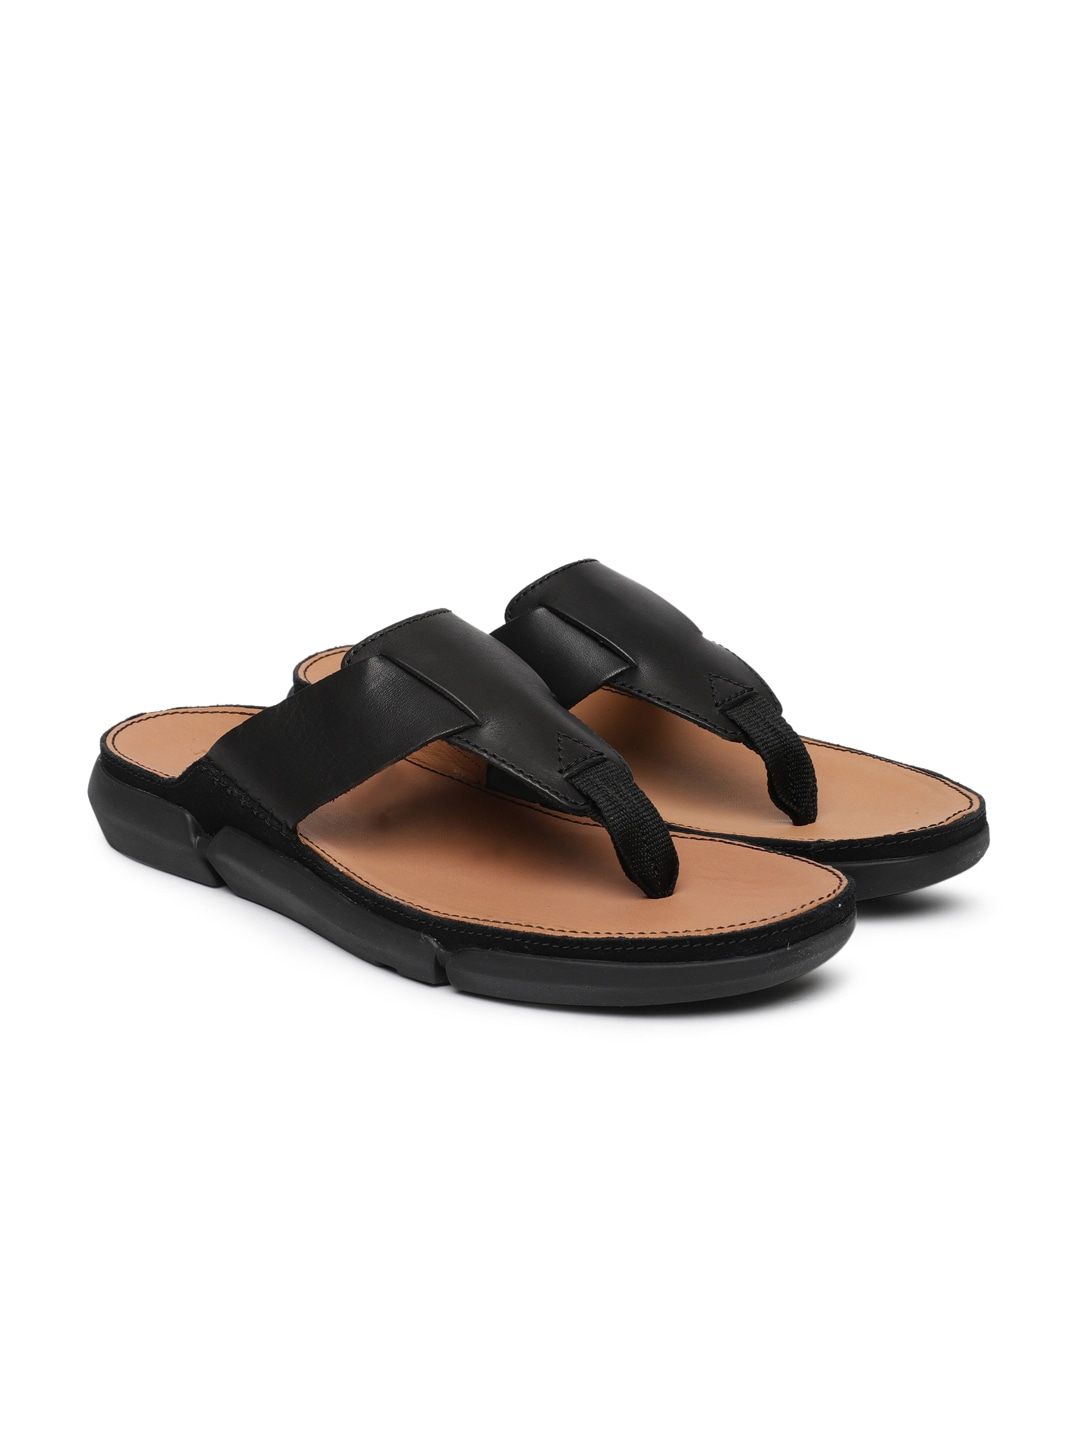 3283066ac6343 CLARKS - Exclusive Clarks Shoes Online Store in India - Myntra